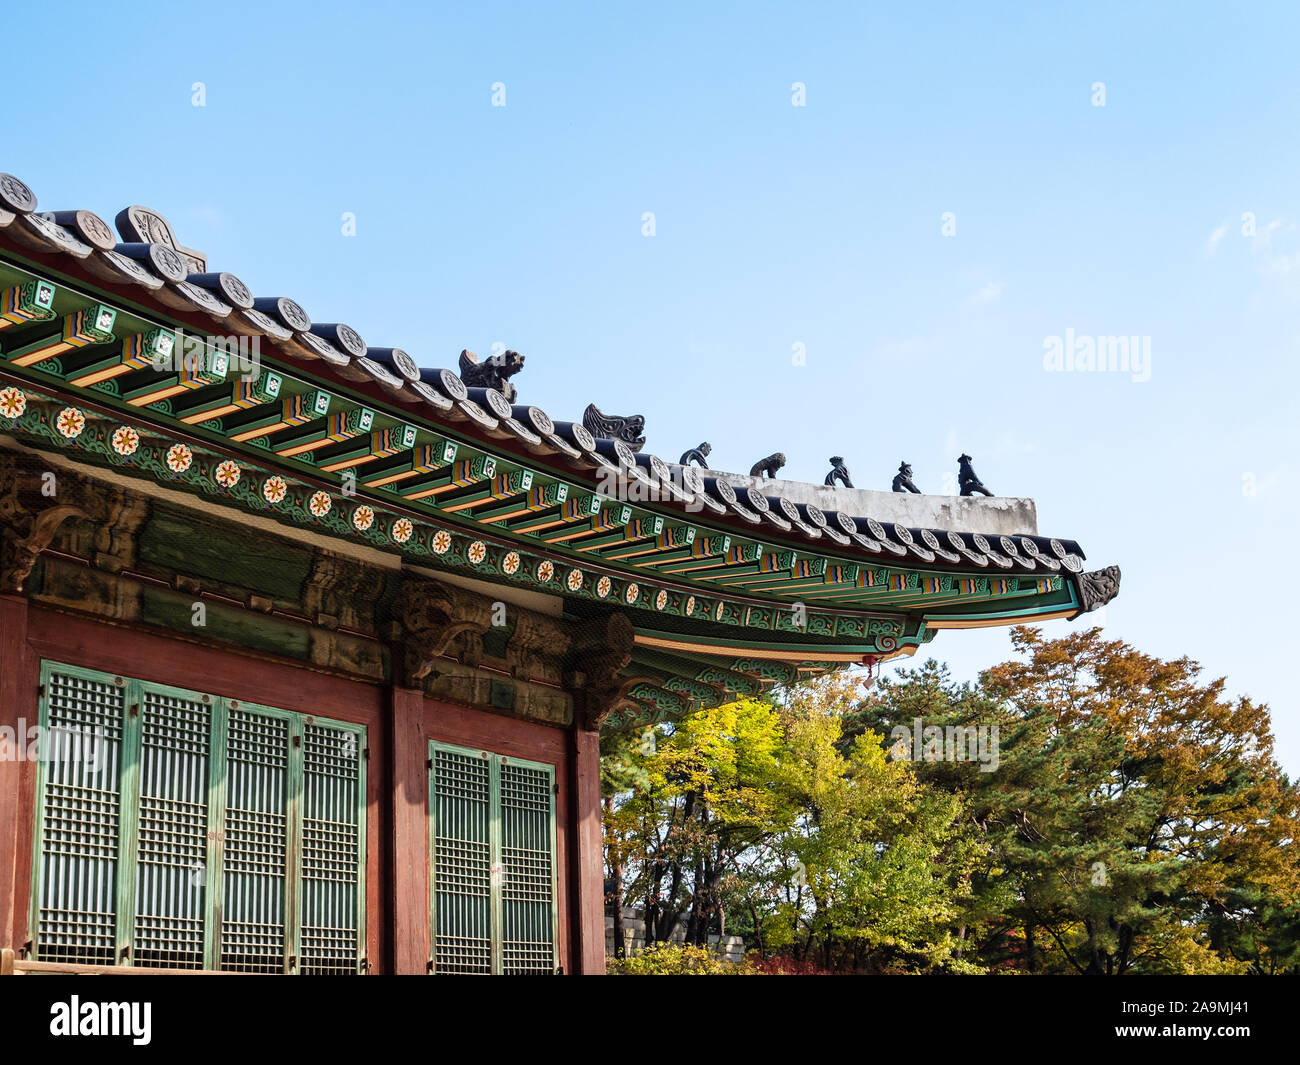 Seoul South Korea October 31 2019 Decor Of Roof On Hall In Changgyeong Palace In Seoul City The Palace Was Built In The Mid 15th Century And It Stock Photo Alamy